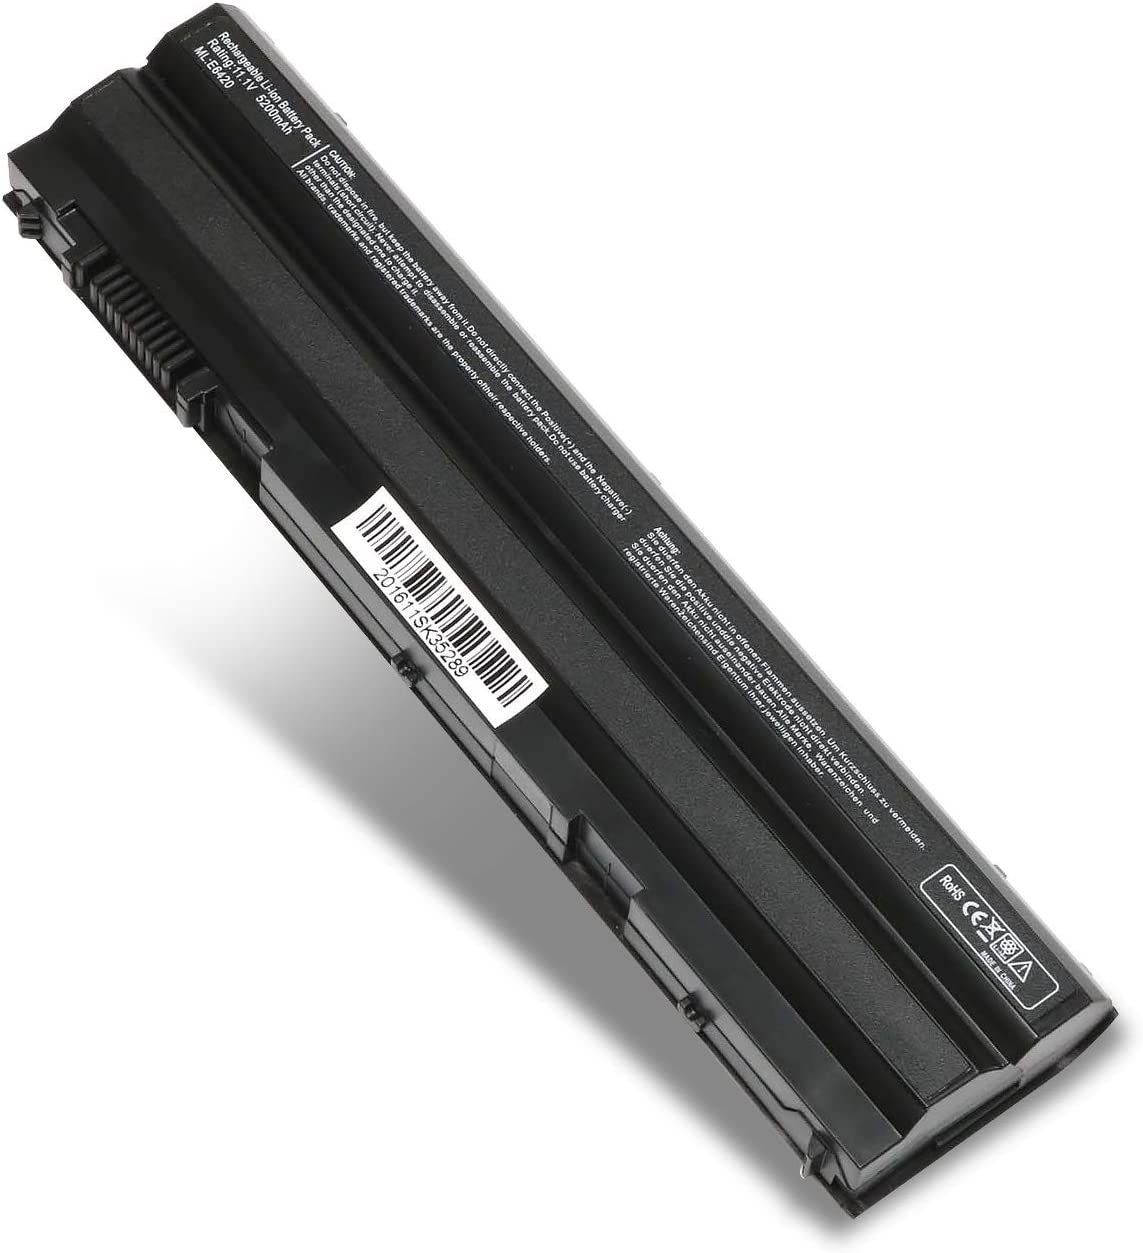 Laptop Battery for Dell Latitude E5420 E5430 E5520 E5530 E6420 E6430 E6520 E6530,Compatible P/N:312-1163 312-1242 M5Y0X HCJWT KJ321 NHXVW PRRRF T54F3 T54FJ X57F1